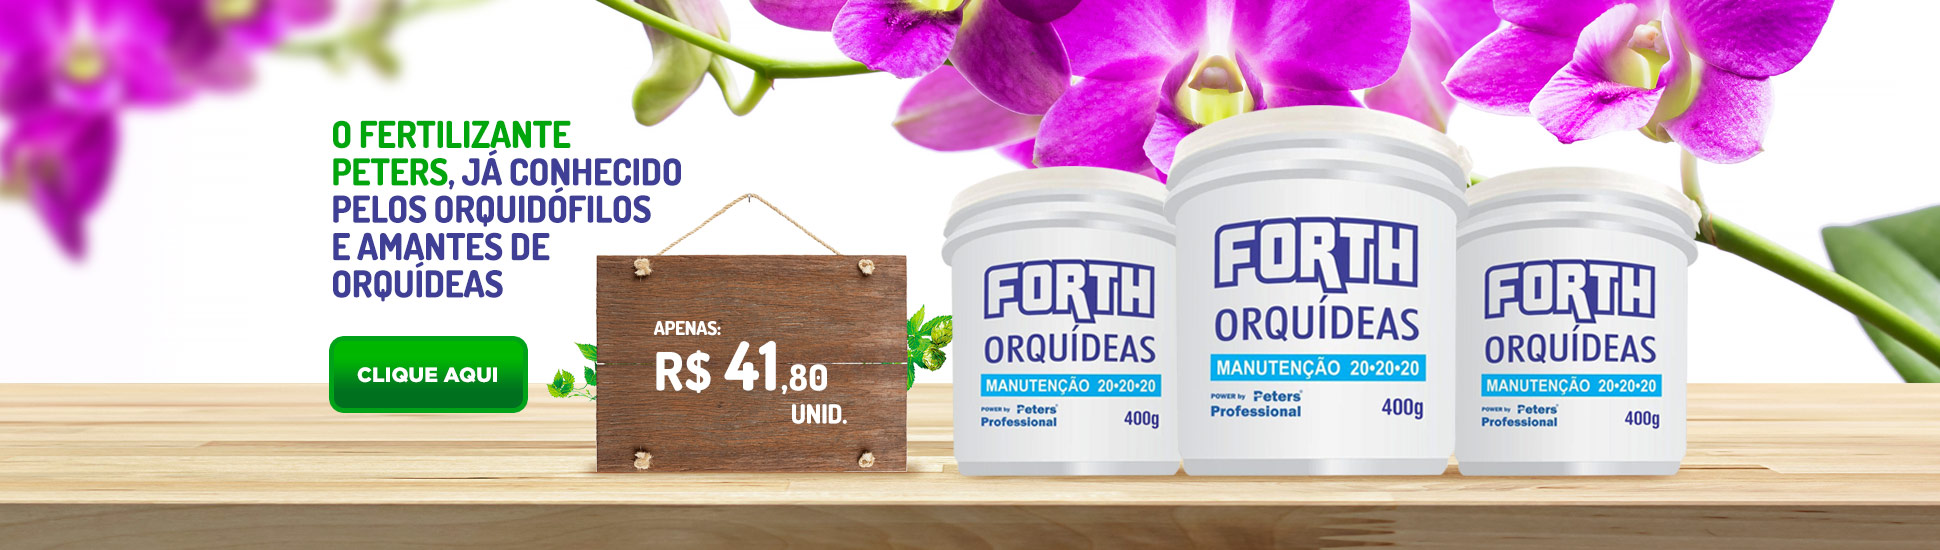 Forth Orquídeas Peter Profissional 400g